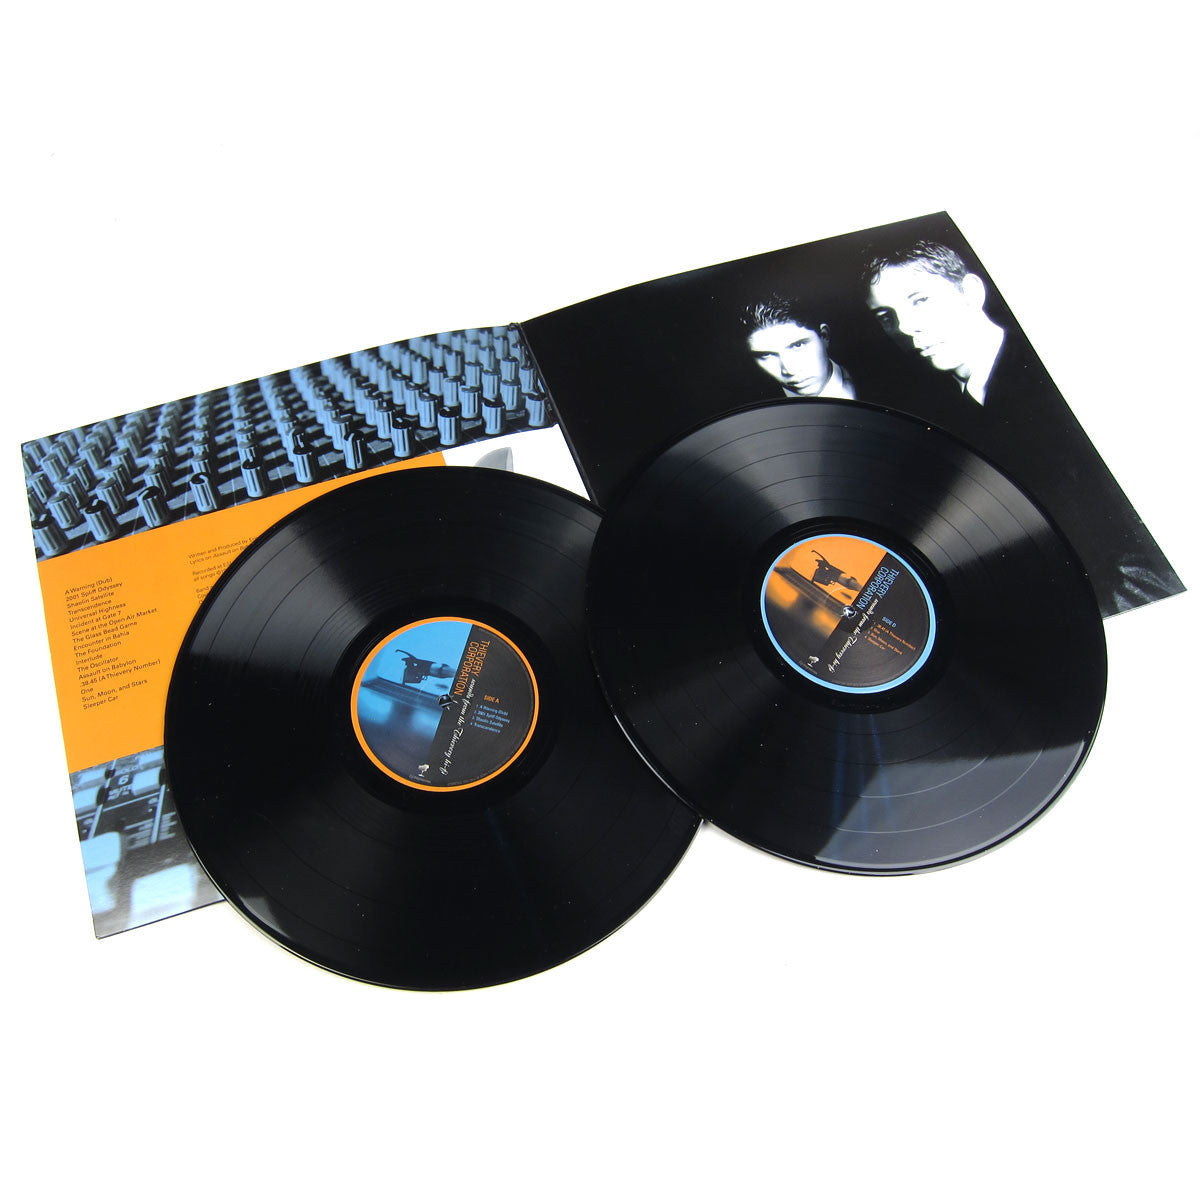 Thievery Corporation: Sounds From The Thievery Hi-Fi Vinyl 2LP detail